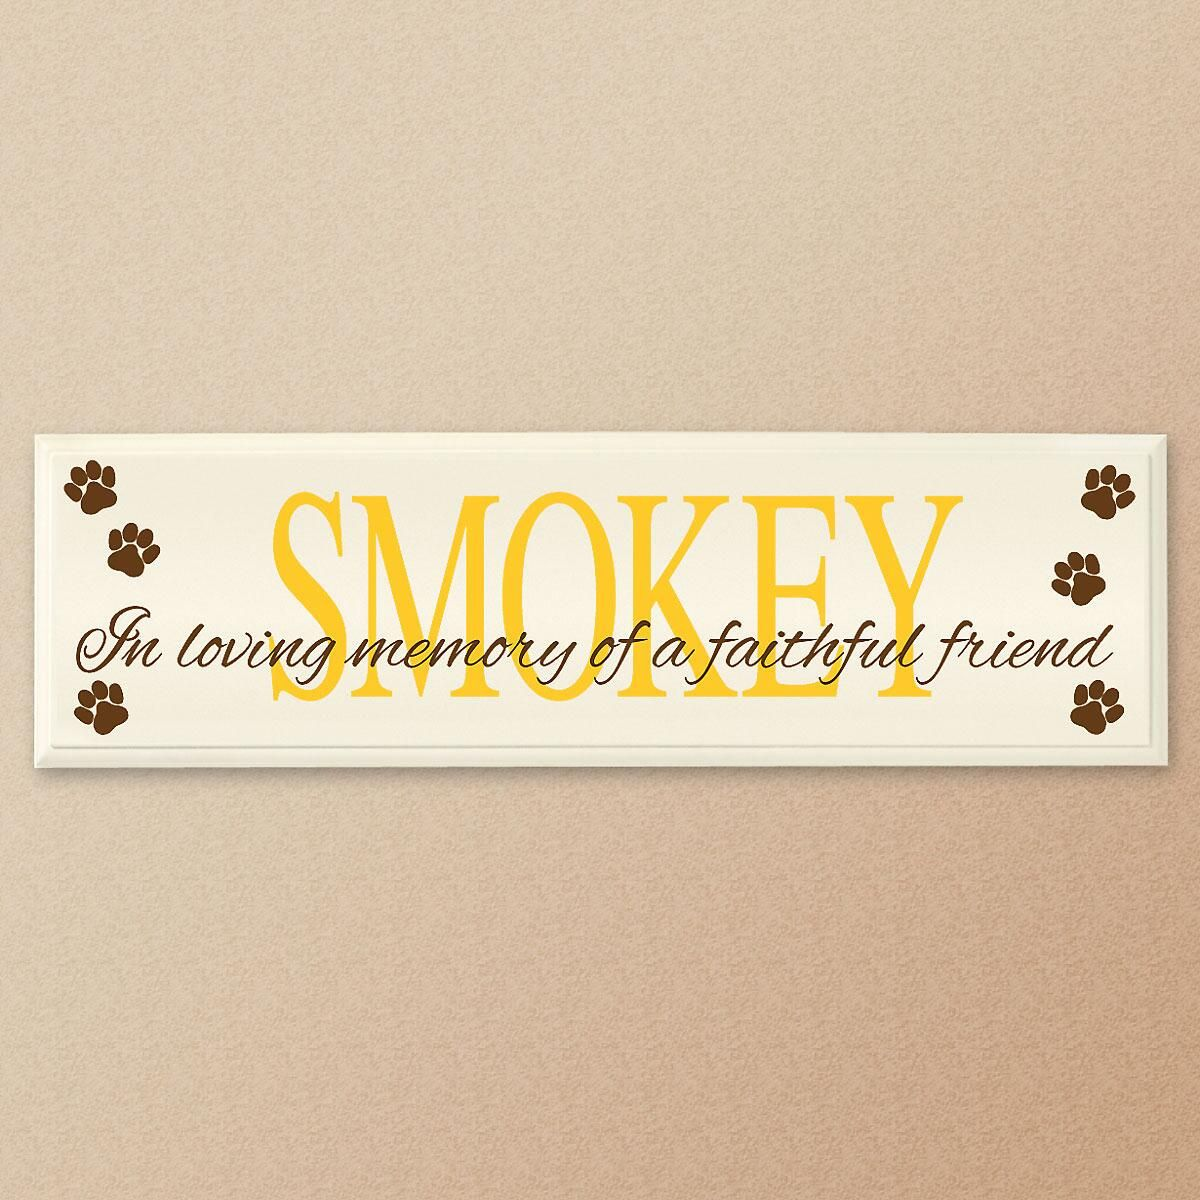 In Loving Memory of a Faithful Friend Personalized Wooden Plaque